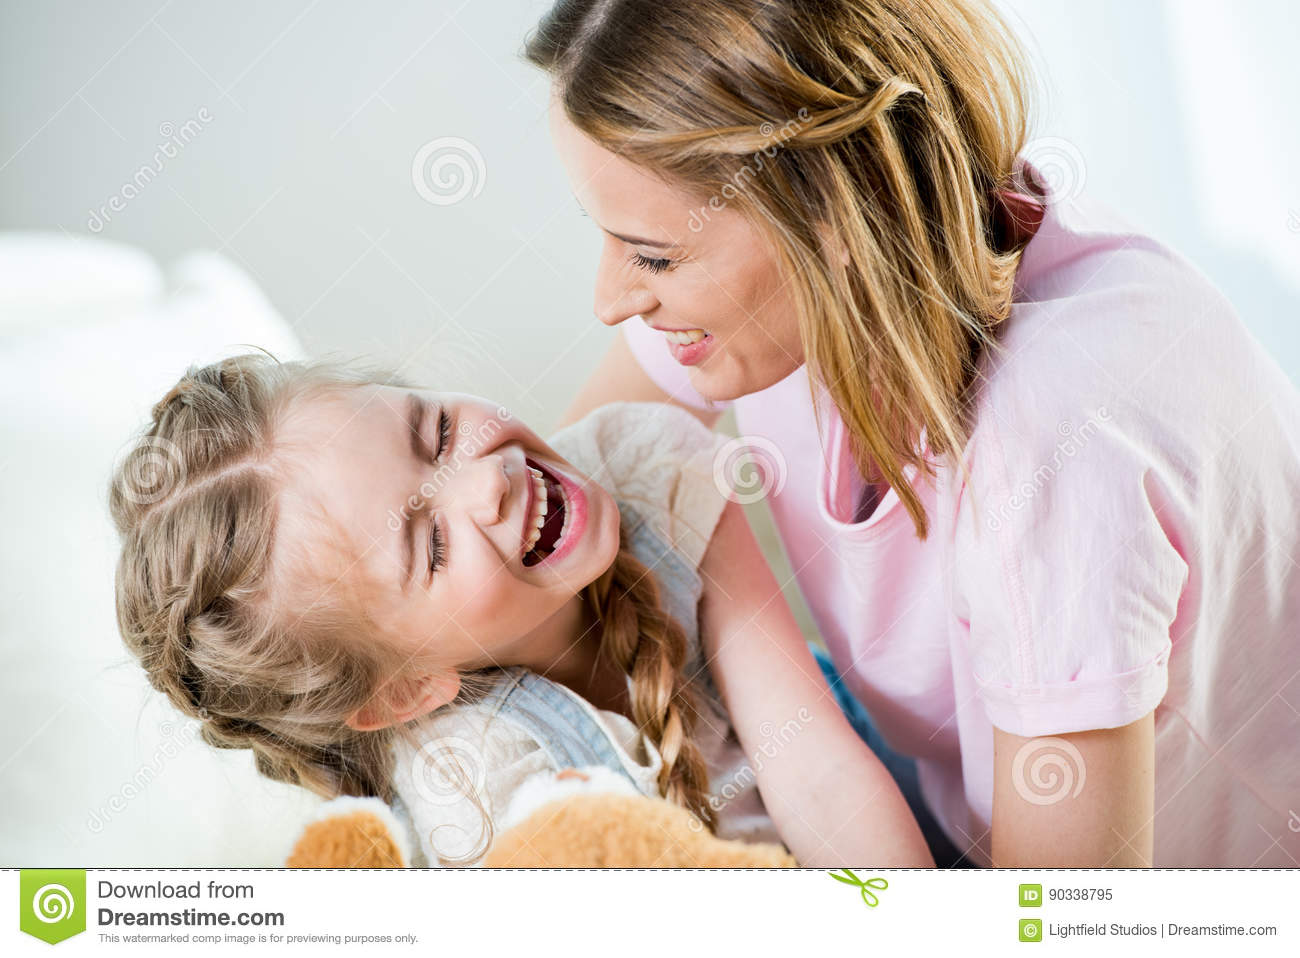 Mom and daughter having fun not